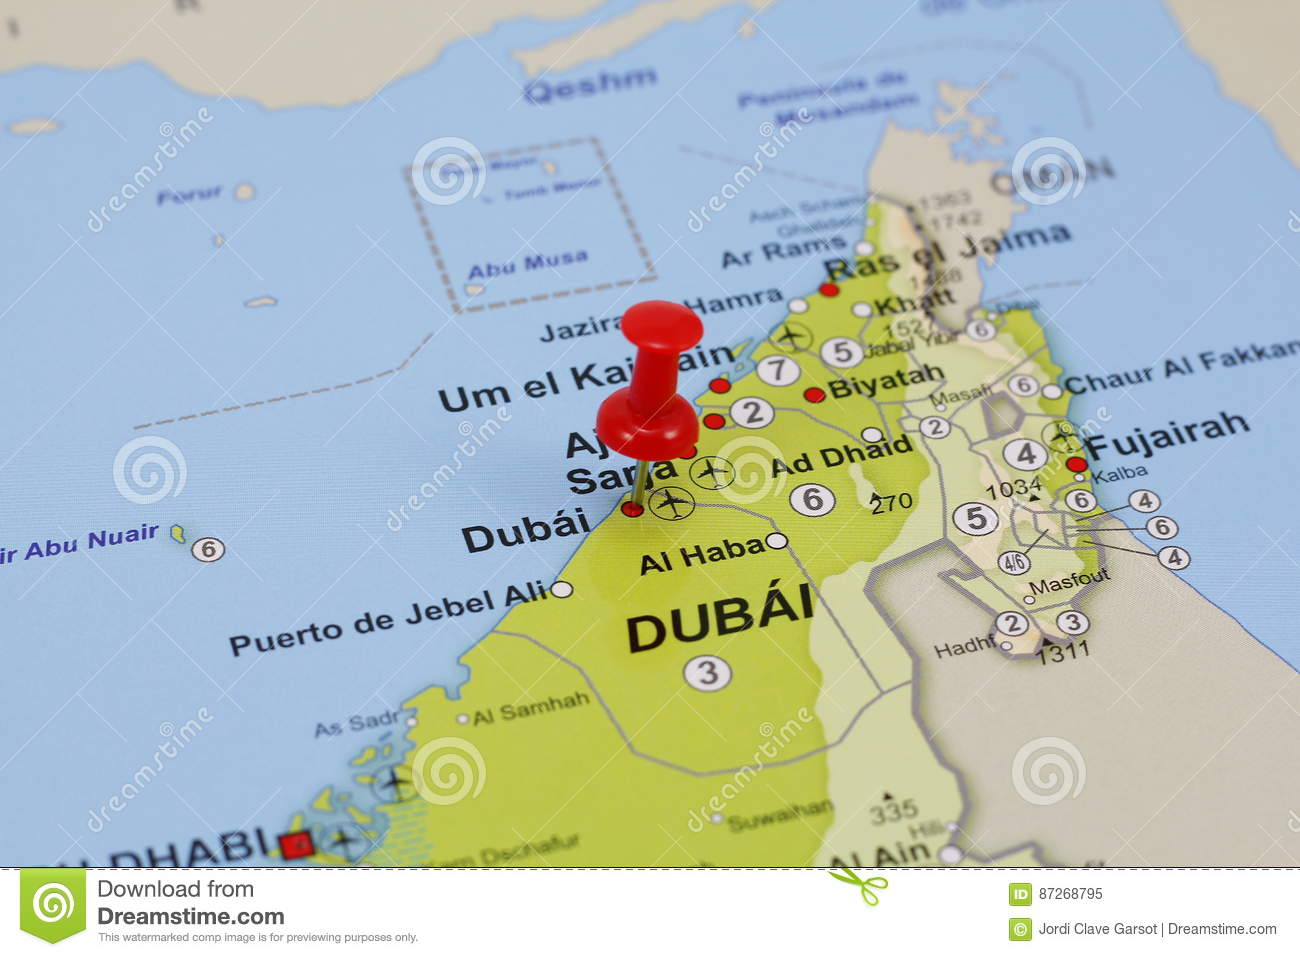 Dubai pin in a map stock image. Image of focus, location ...